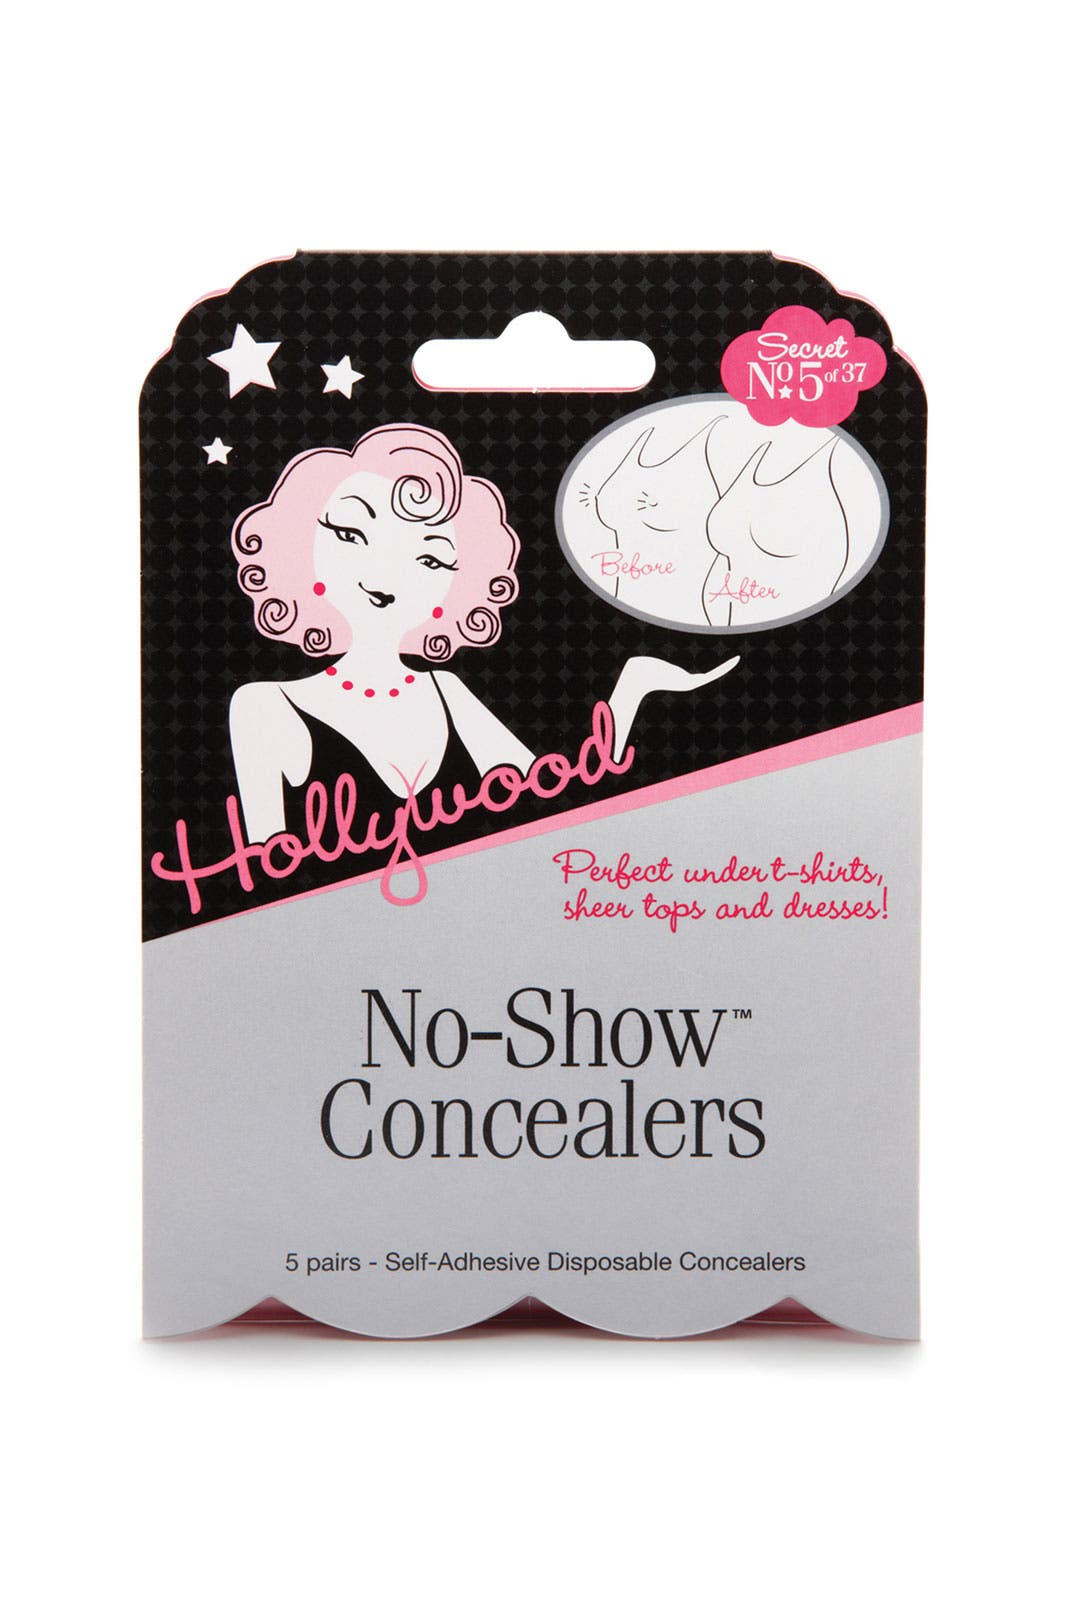 No-show Nipple Concealers by Hollywood Fashion Tape